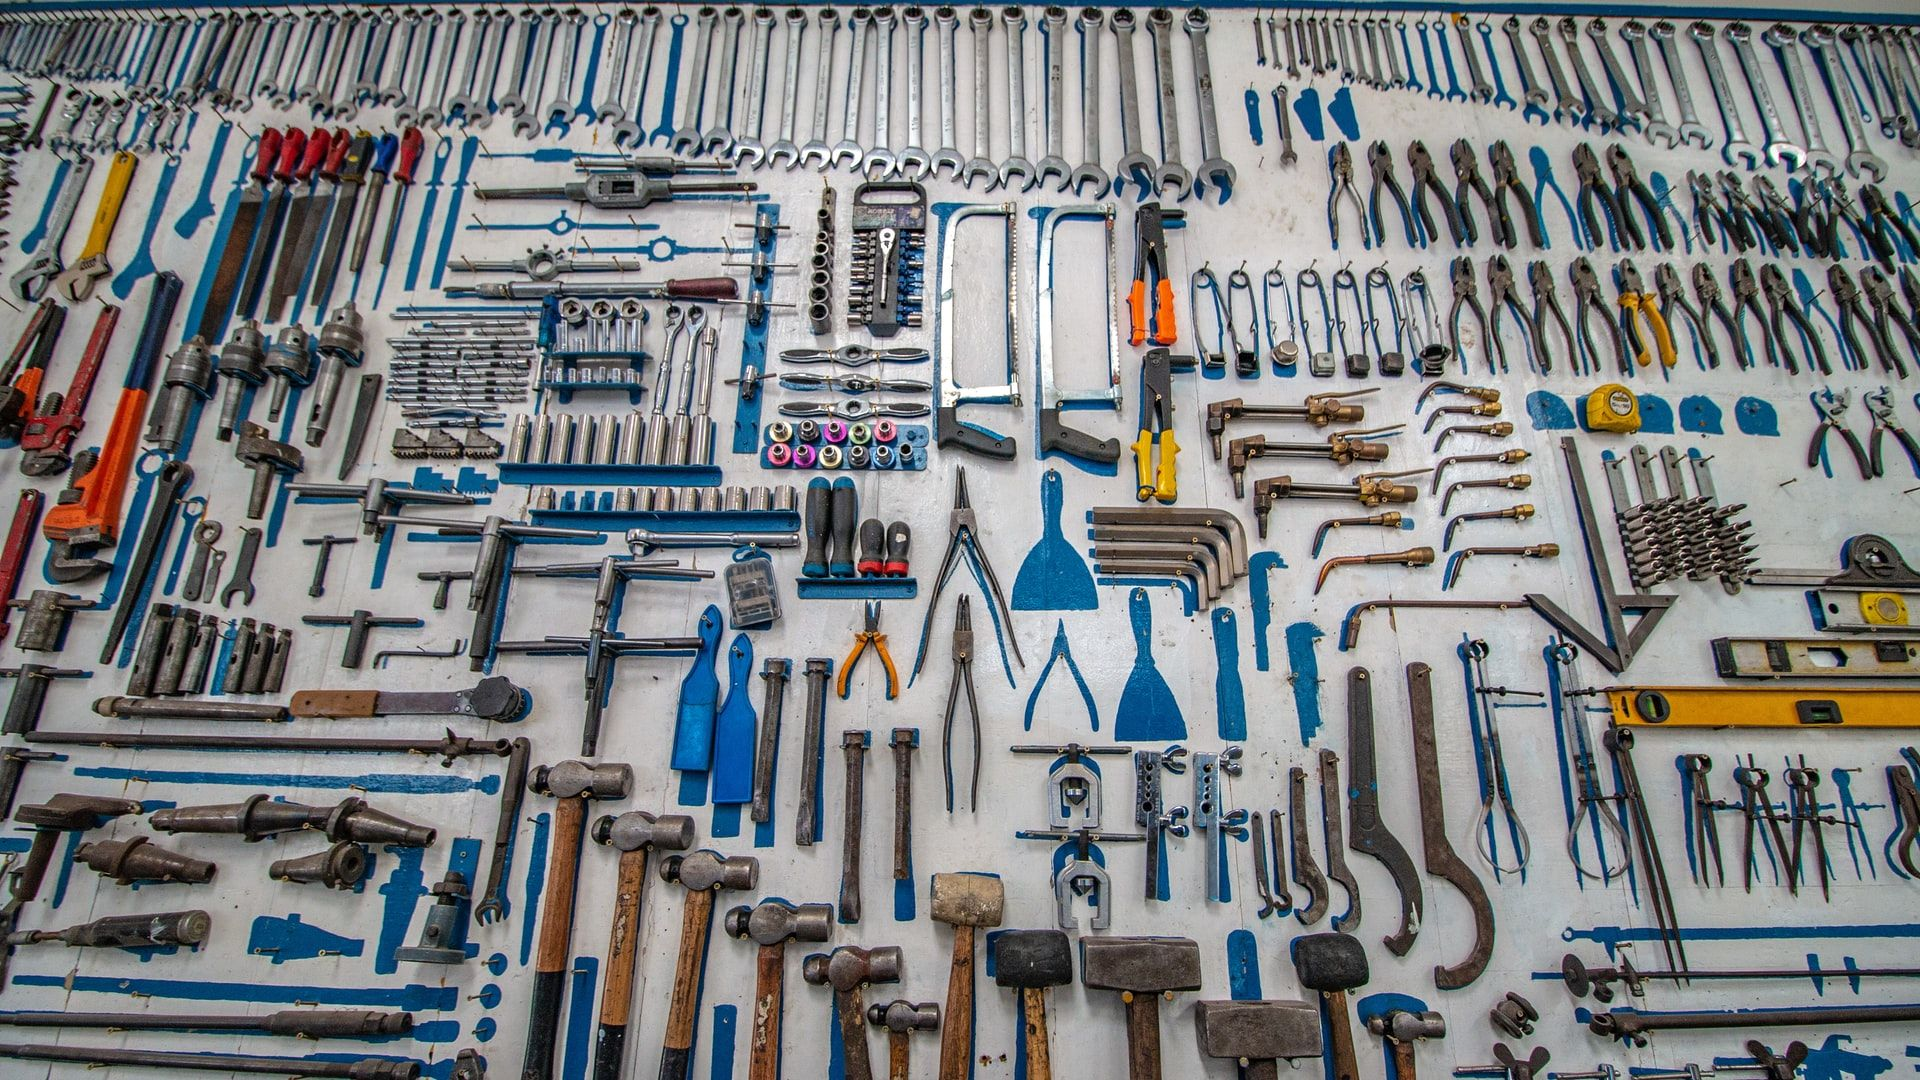 A large number of tools hanging on pegs in a wall. The tools are all hand tools and very near to one another.